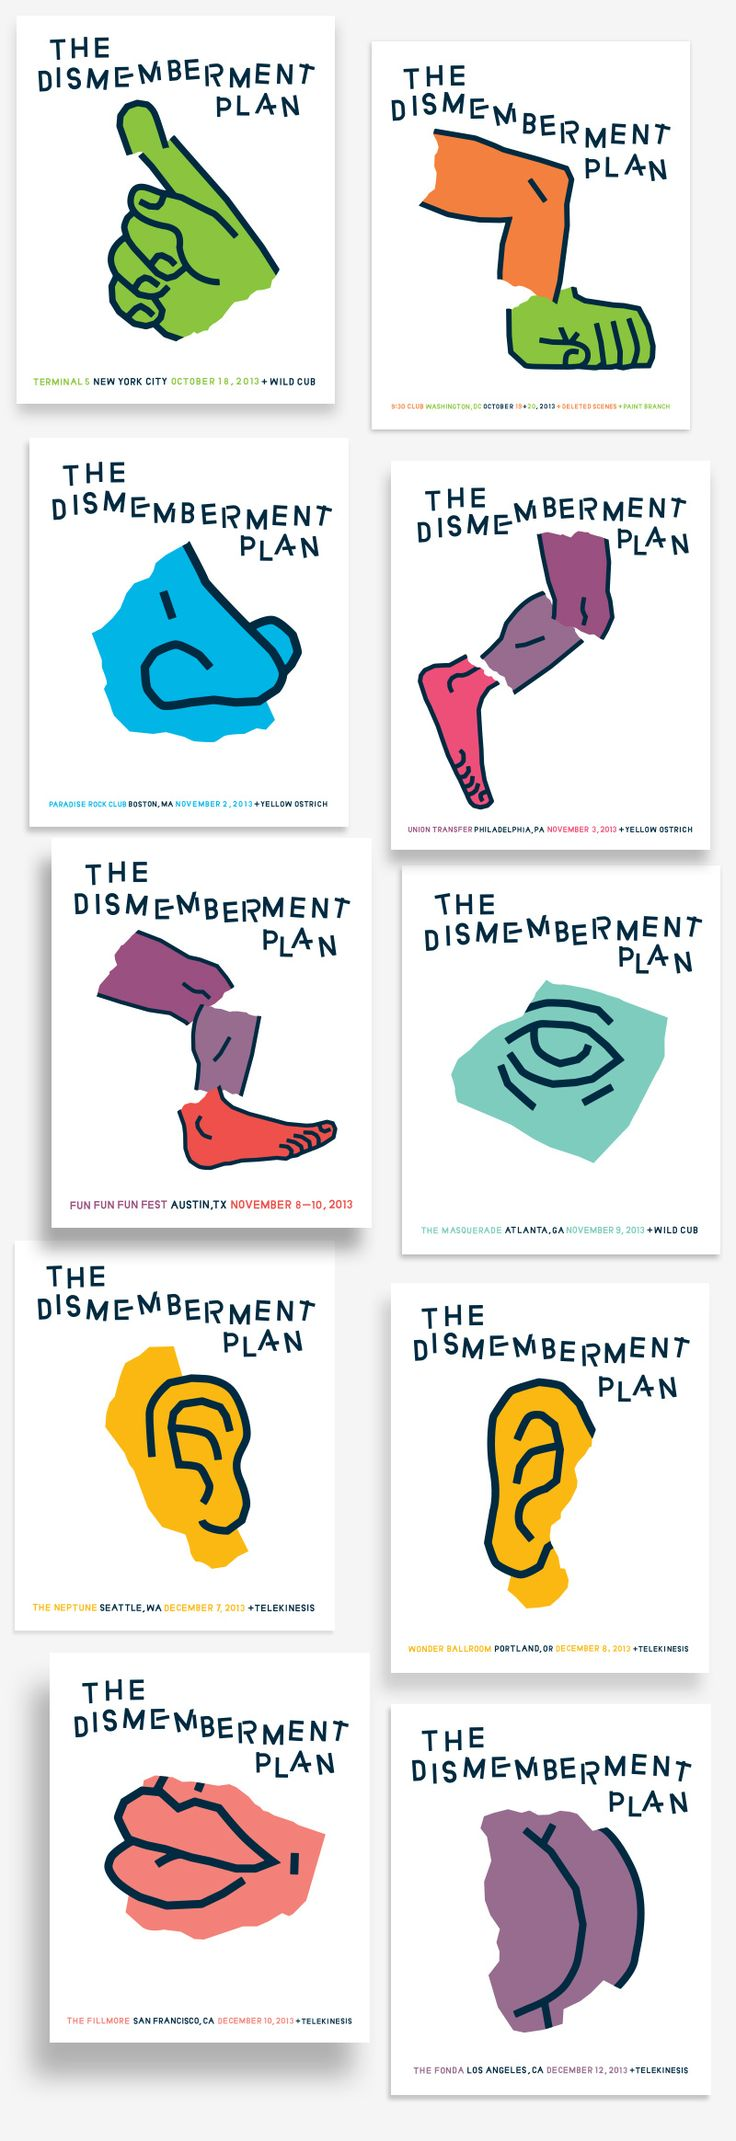 THE DISMEMBERMENT PLAN - Trademark™